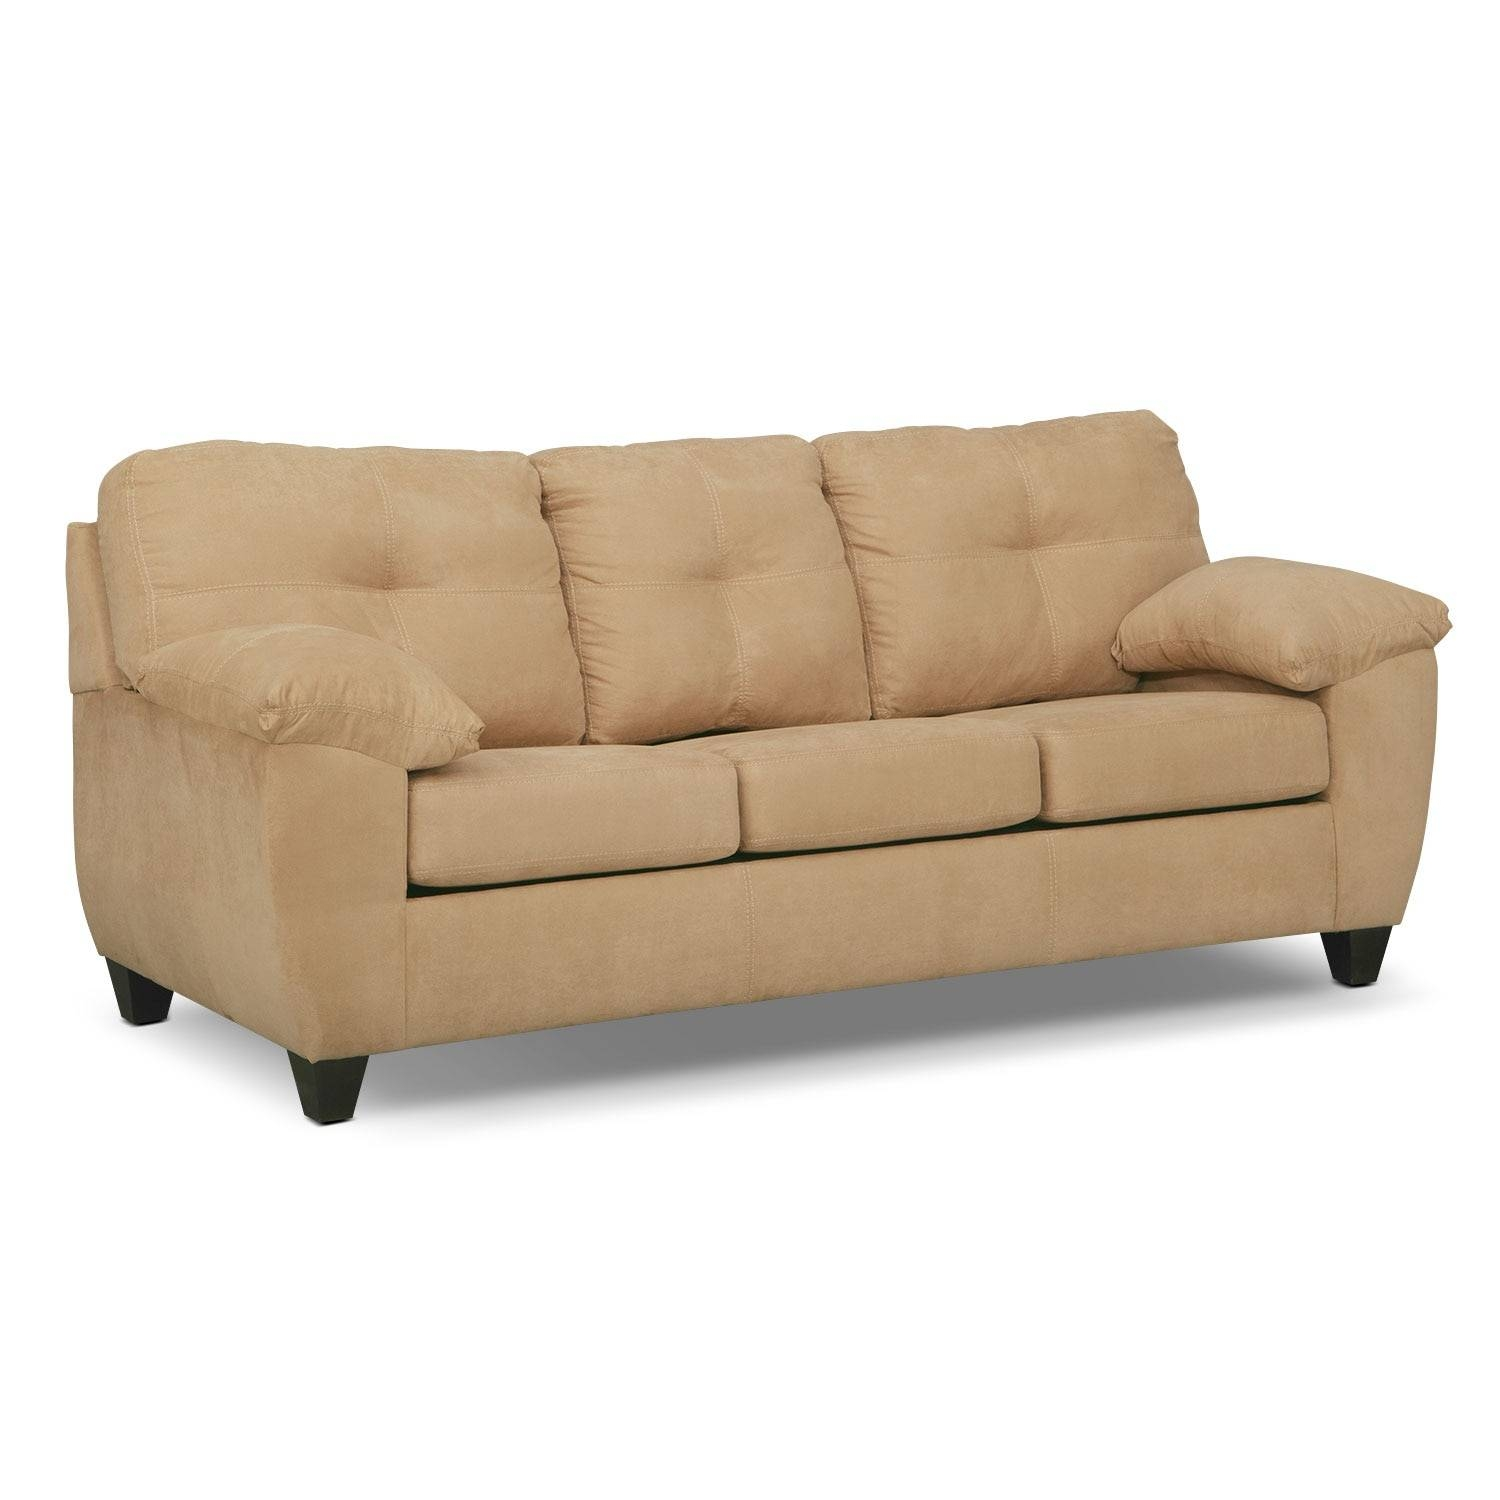 Sleeper Sofas | Value City Furniture | Value City Furniture with Full Size Sofa Sleepers (Image 14 of 30)